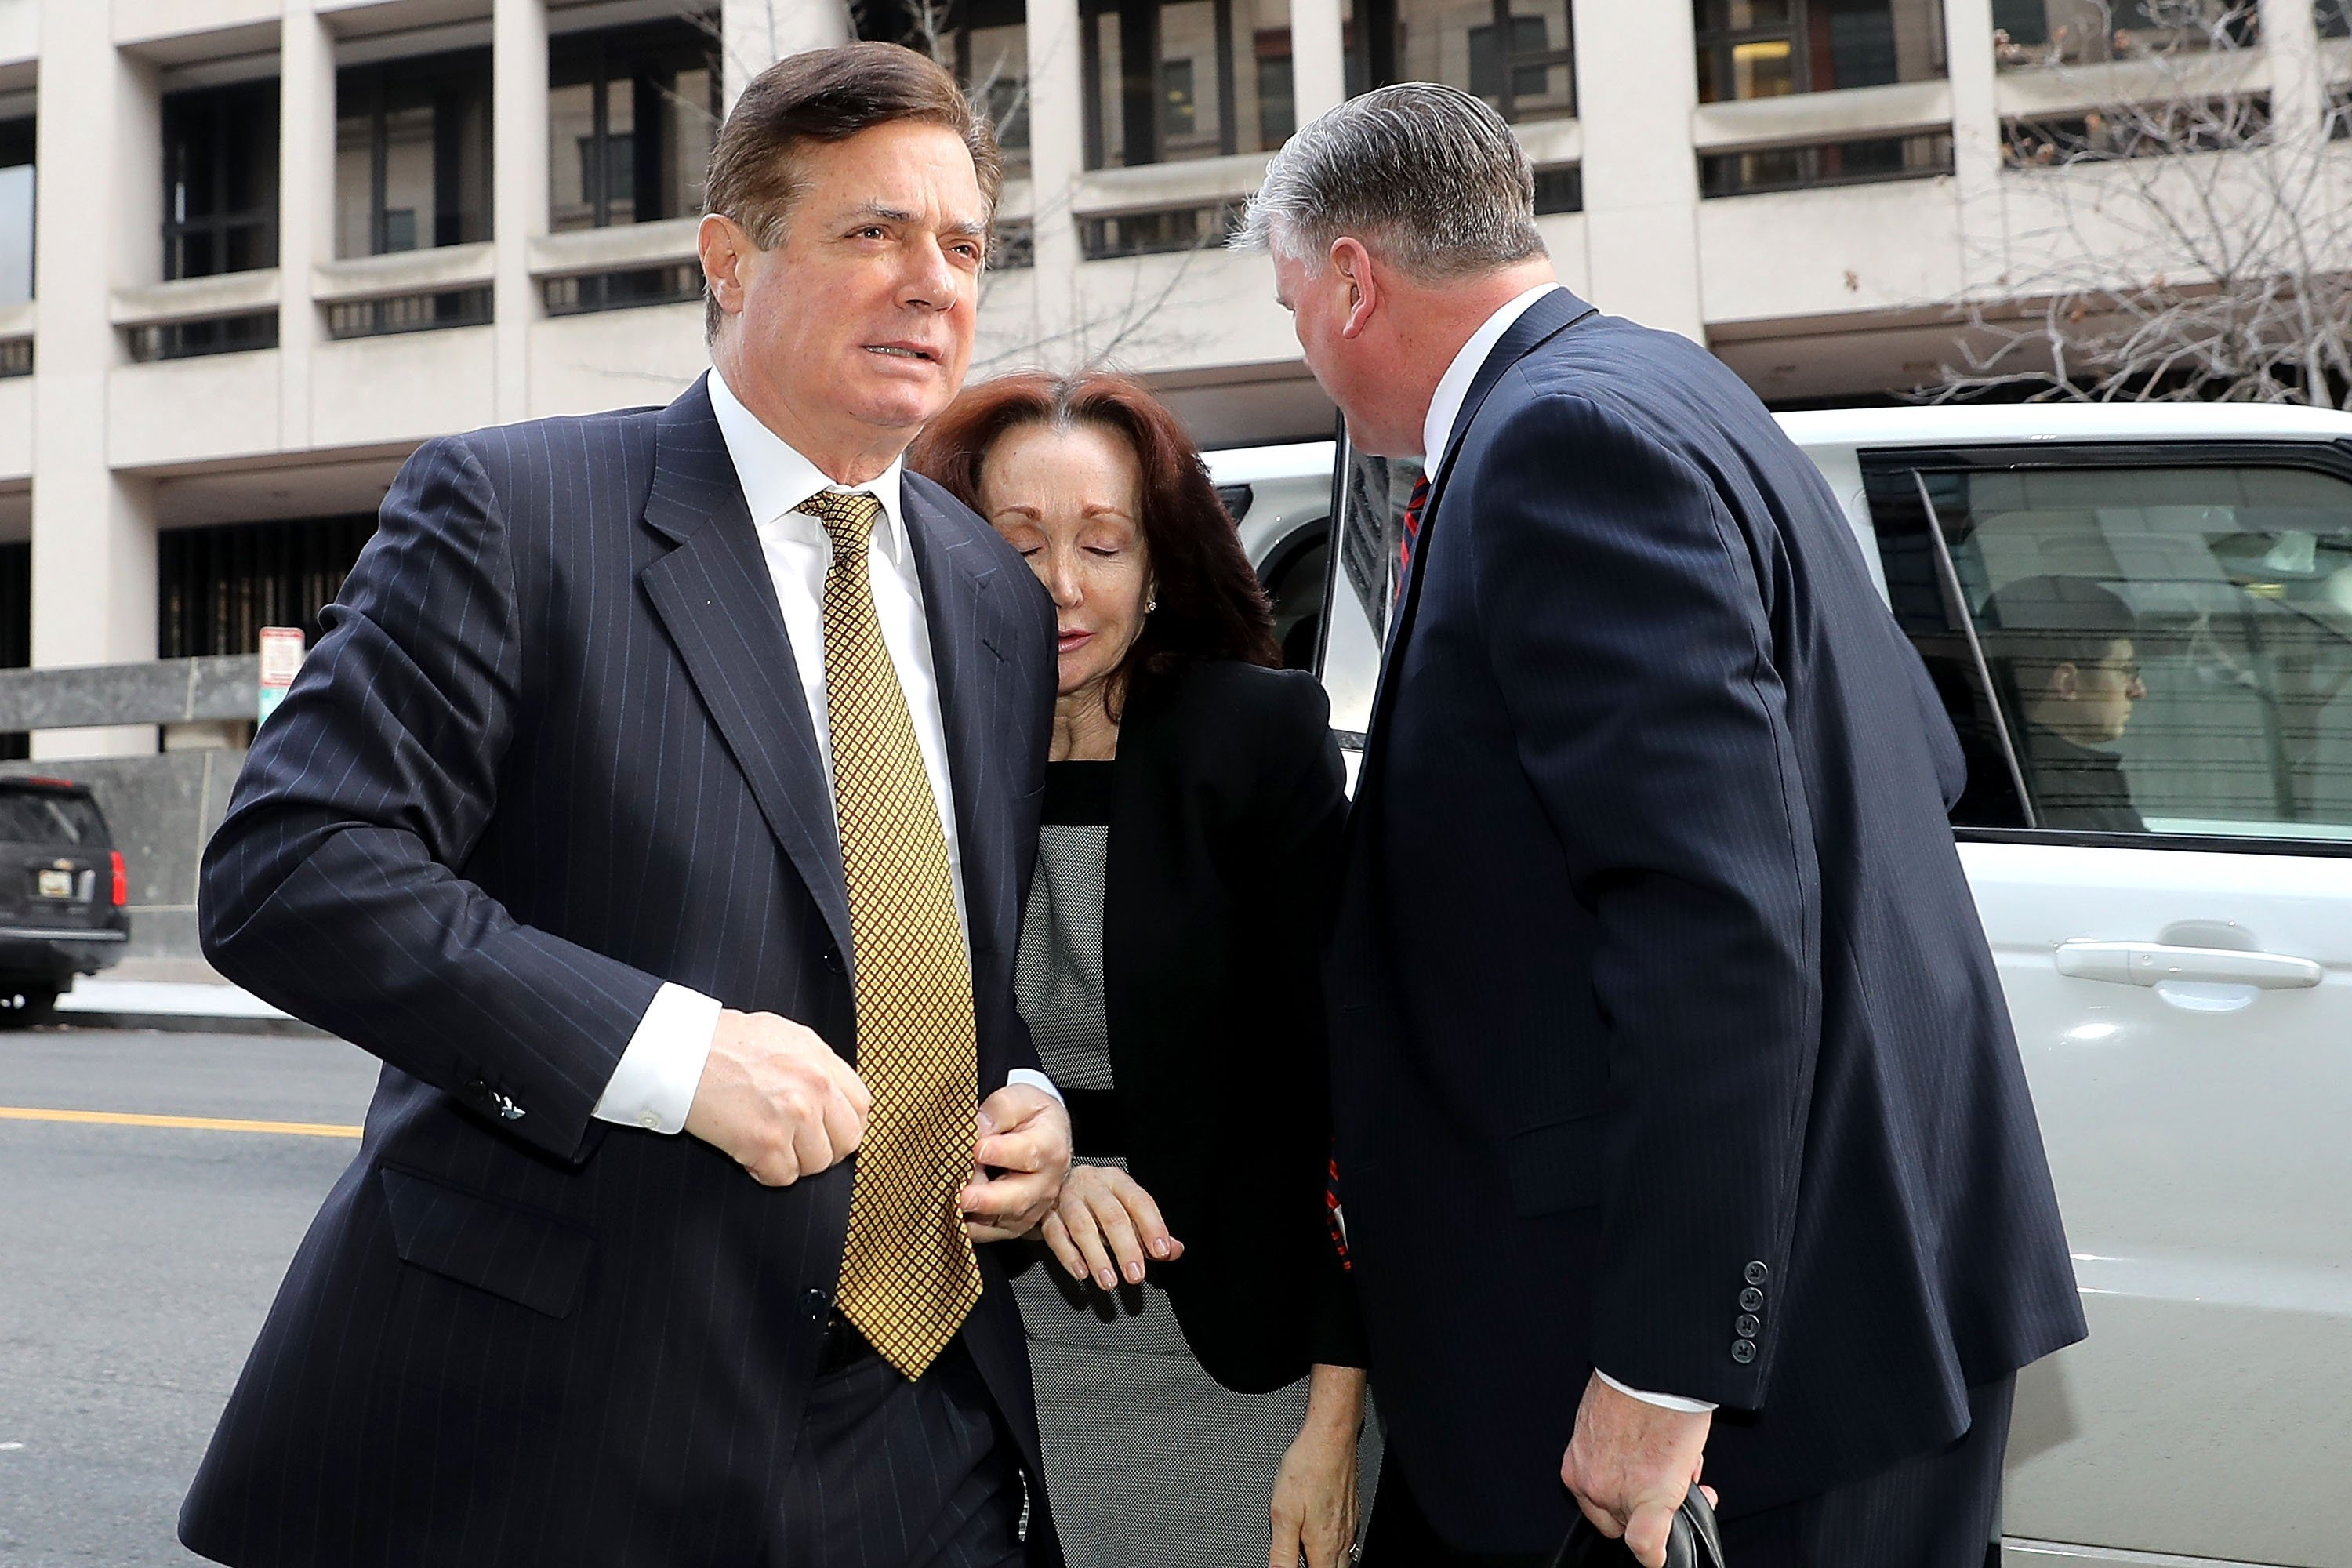 Federal judge just ruled on Paul Manafort's motion to dismiss Mueller charges